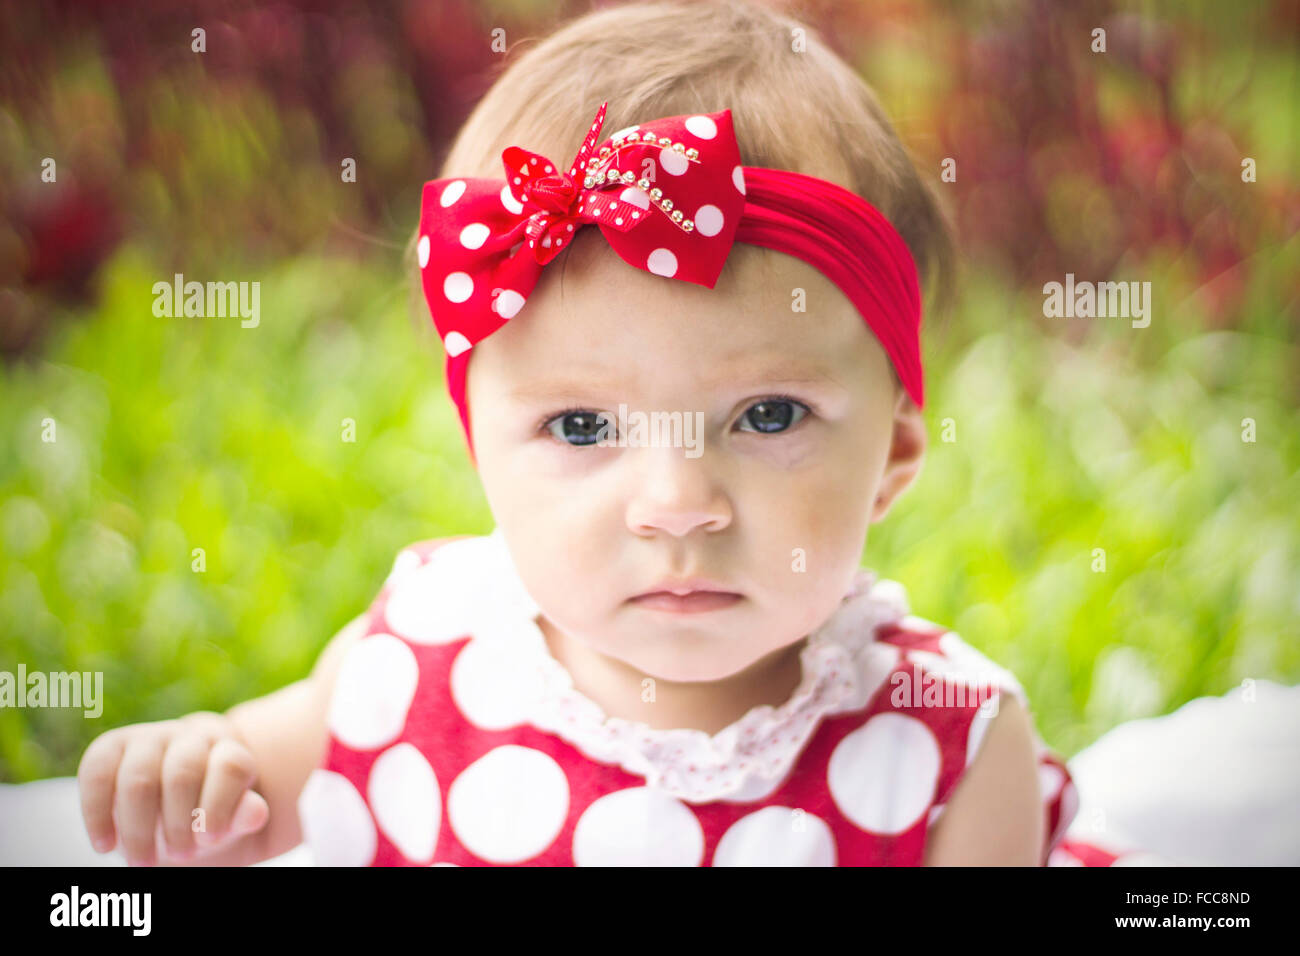 Close-Up Portrait Of A Pretty Baby Girl - Stock Image